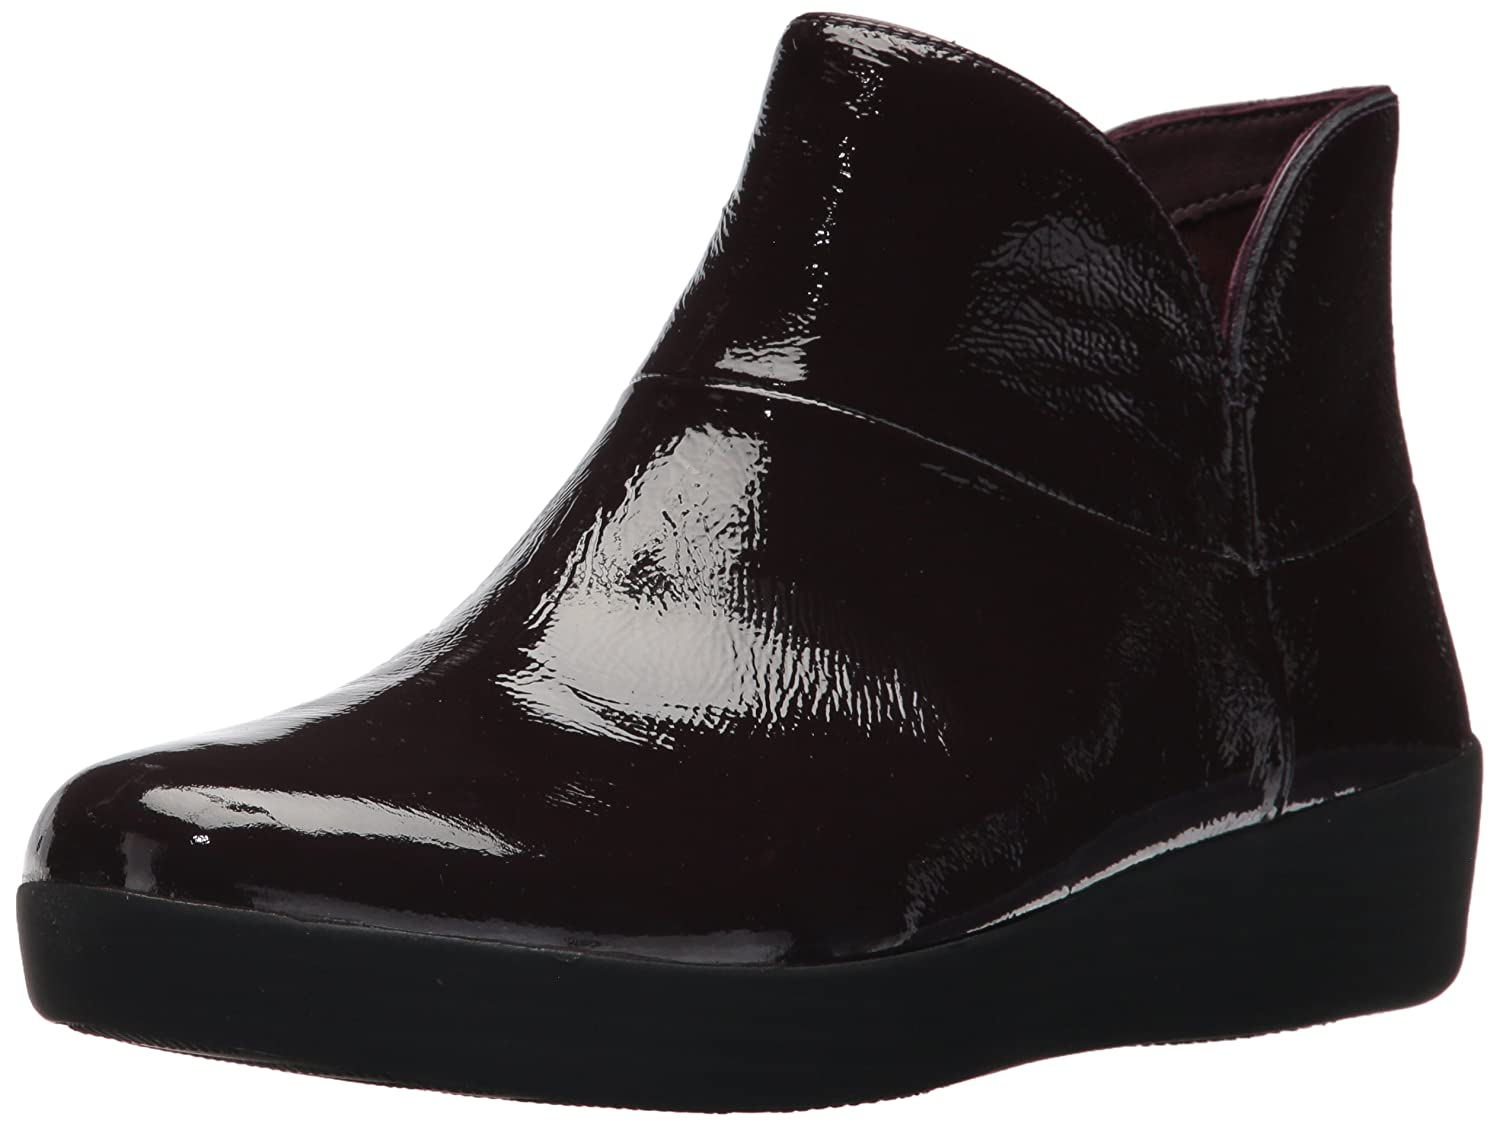 FitFlop Women's Supermod Ii Crinkle-Patent Leather Ankle Boot B075G3CNCF 10 B(M) US|Purple